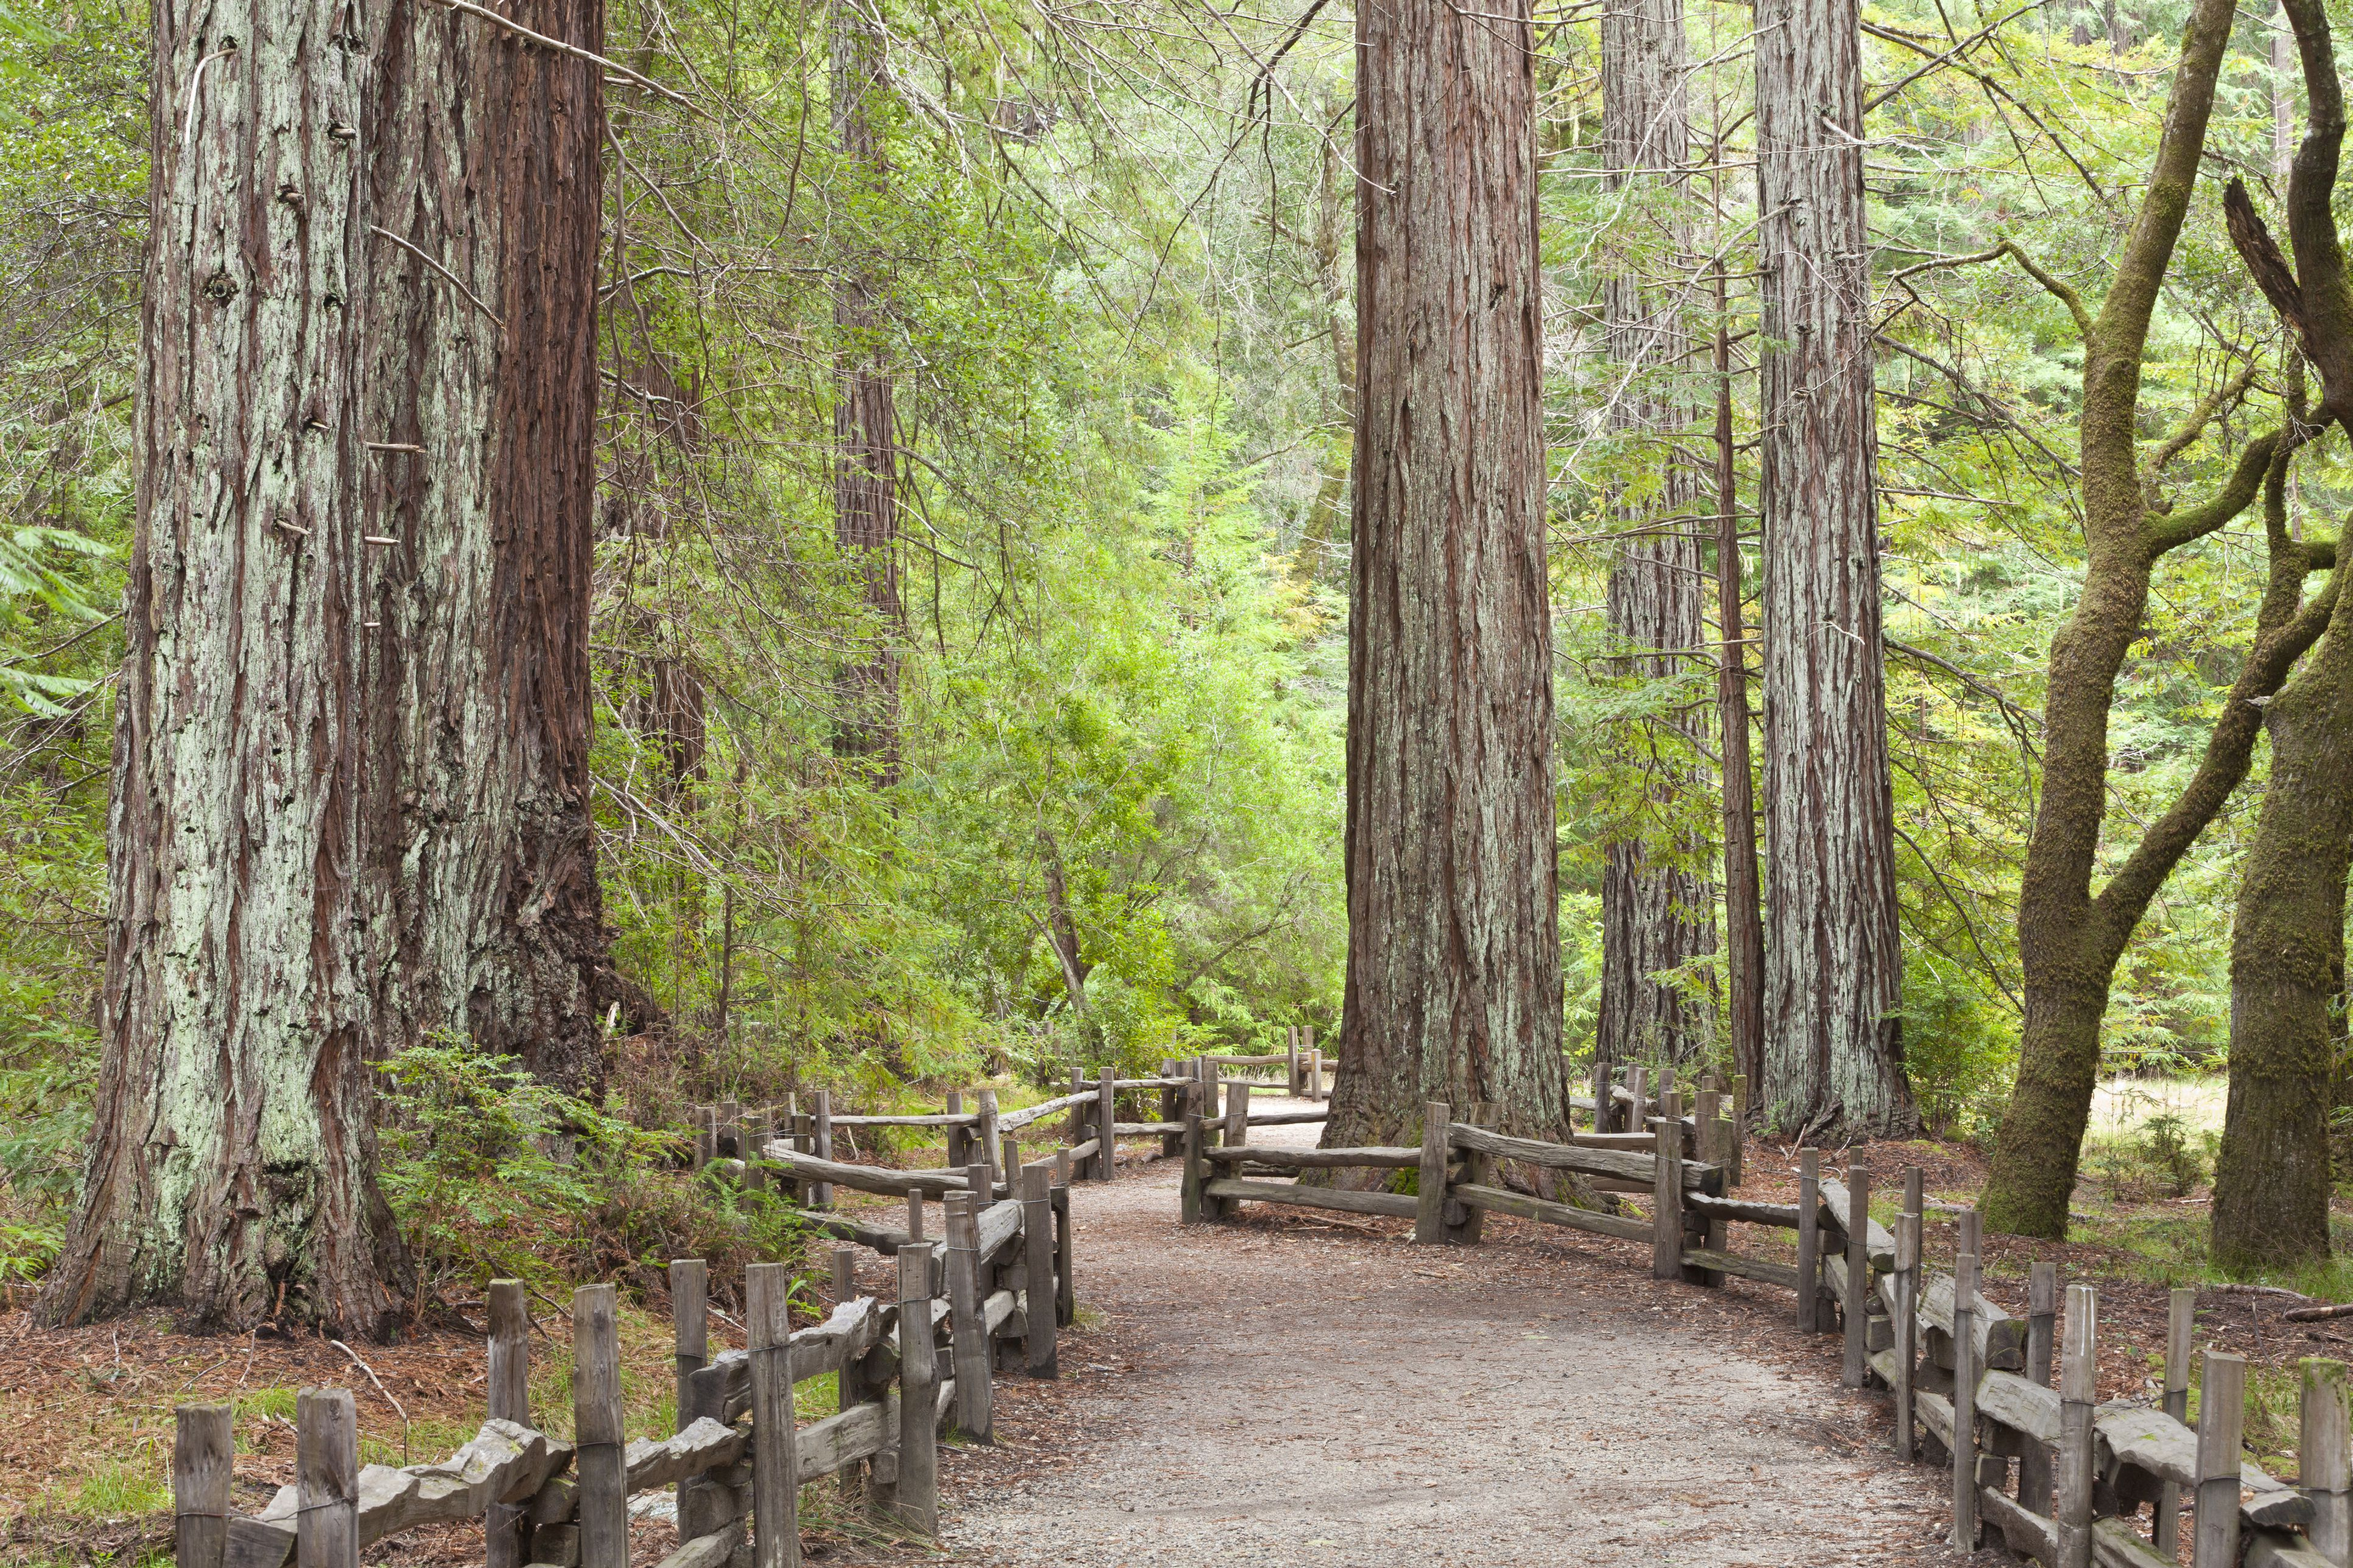 View of trail through redwoods, Big Basin Redwoods State Park, California, USA